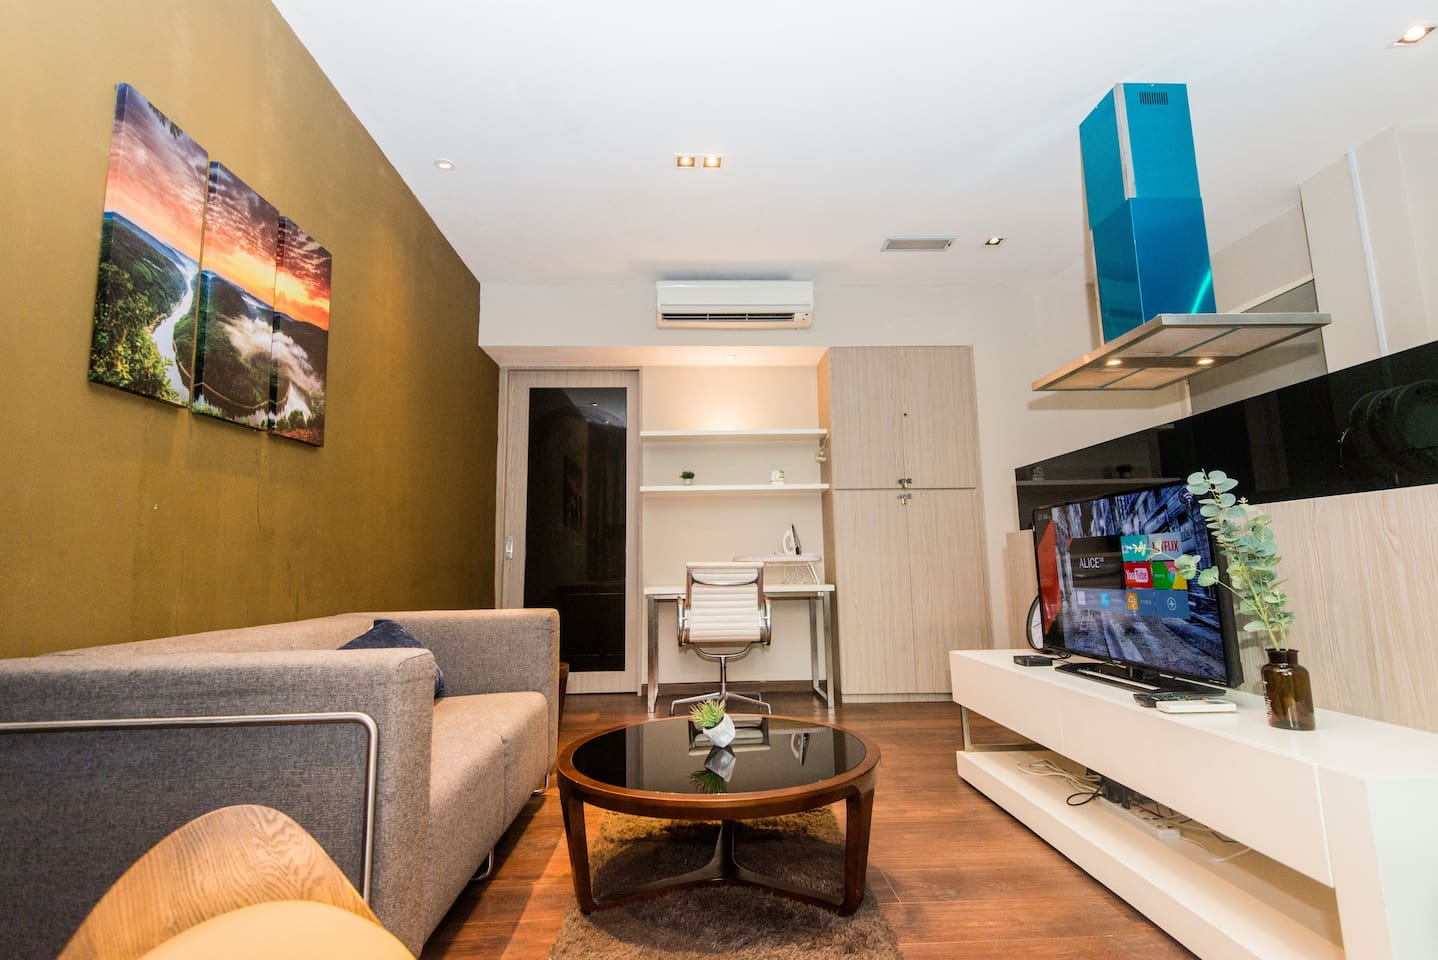 This is Luxury Condominium Unit located at the city center of Kota Kinabalu, with 5 minutes walking distance to reach Imago Shopping Mall. 一房一厅公寓位于市中心内, 步行5分钟就可以到达商场.